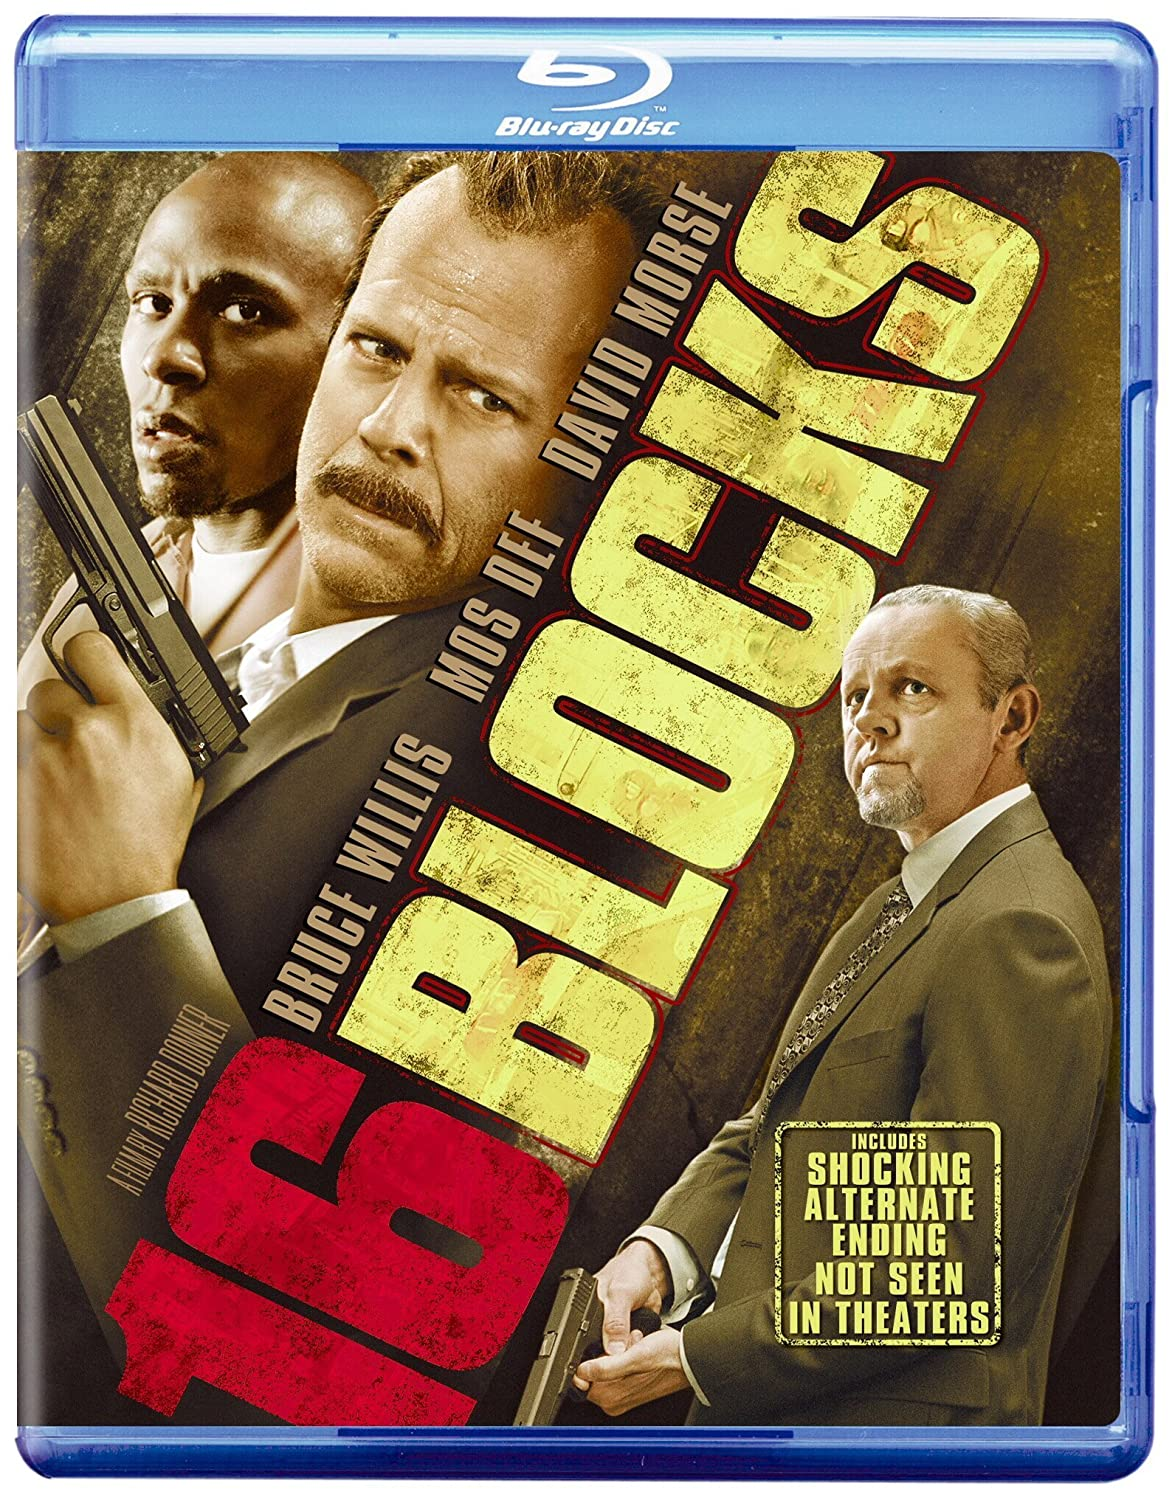 16 Blocks [Blu-ray] Bruce Willis David Morse Mos Def Richard Donner